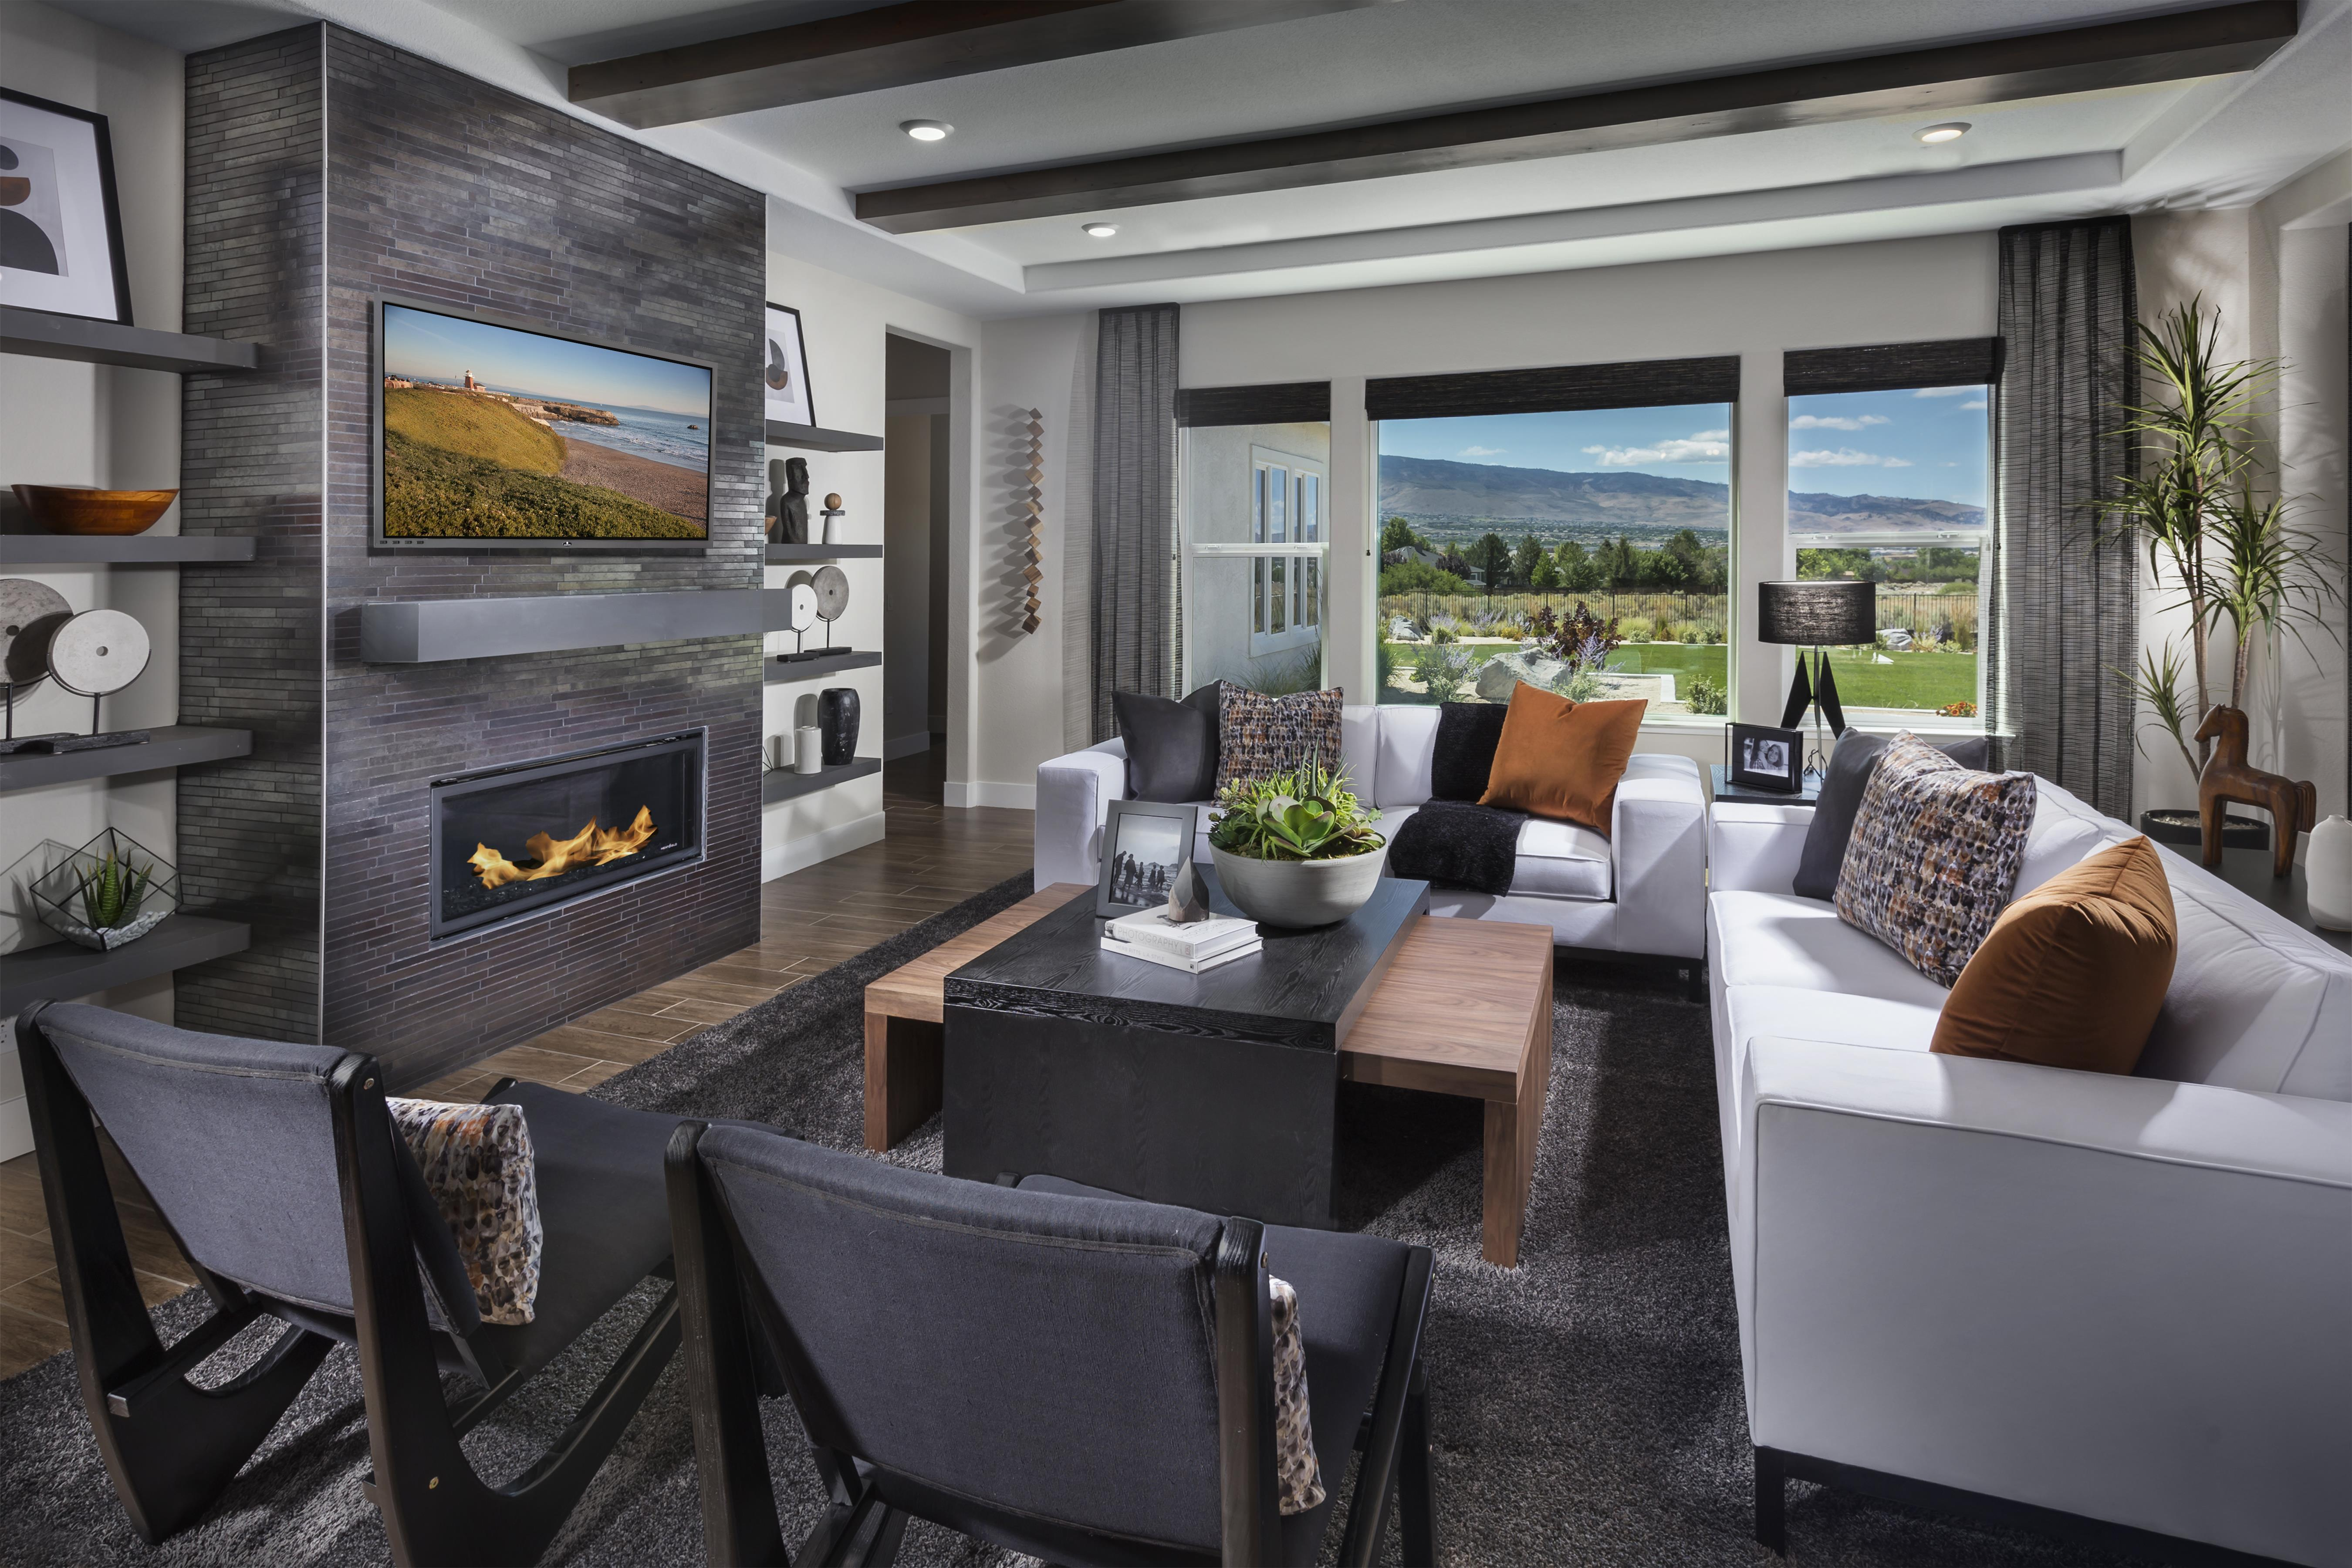 Living Area featured in the Plan 4 By Tim Lewis Communities in Reno, NV